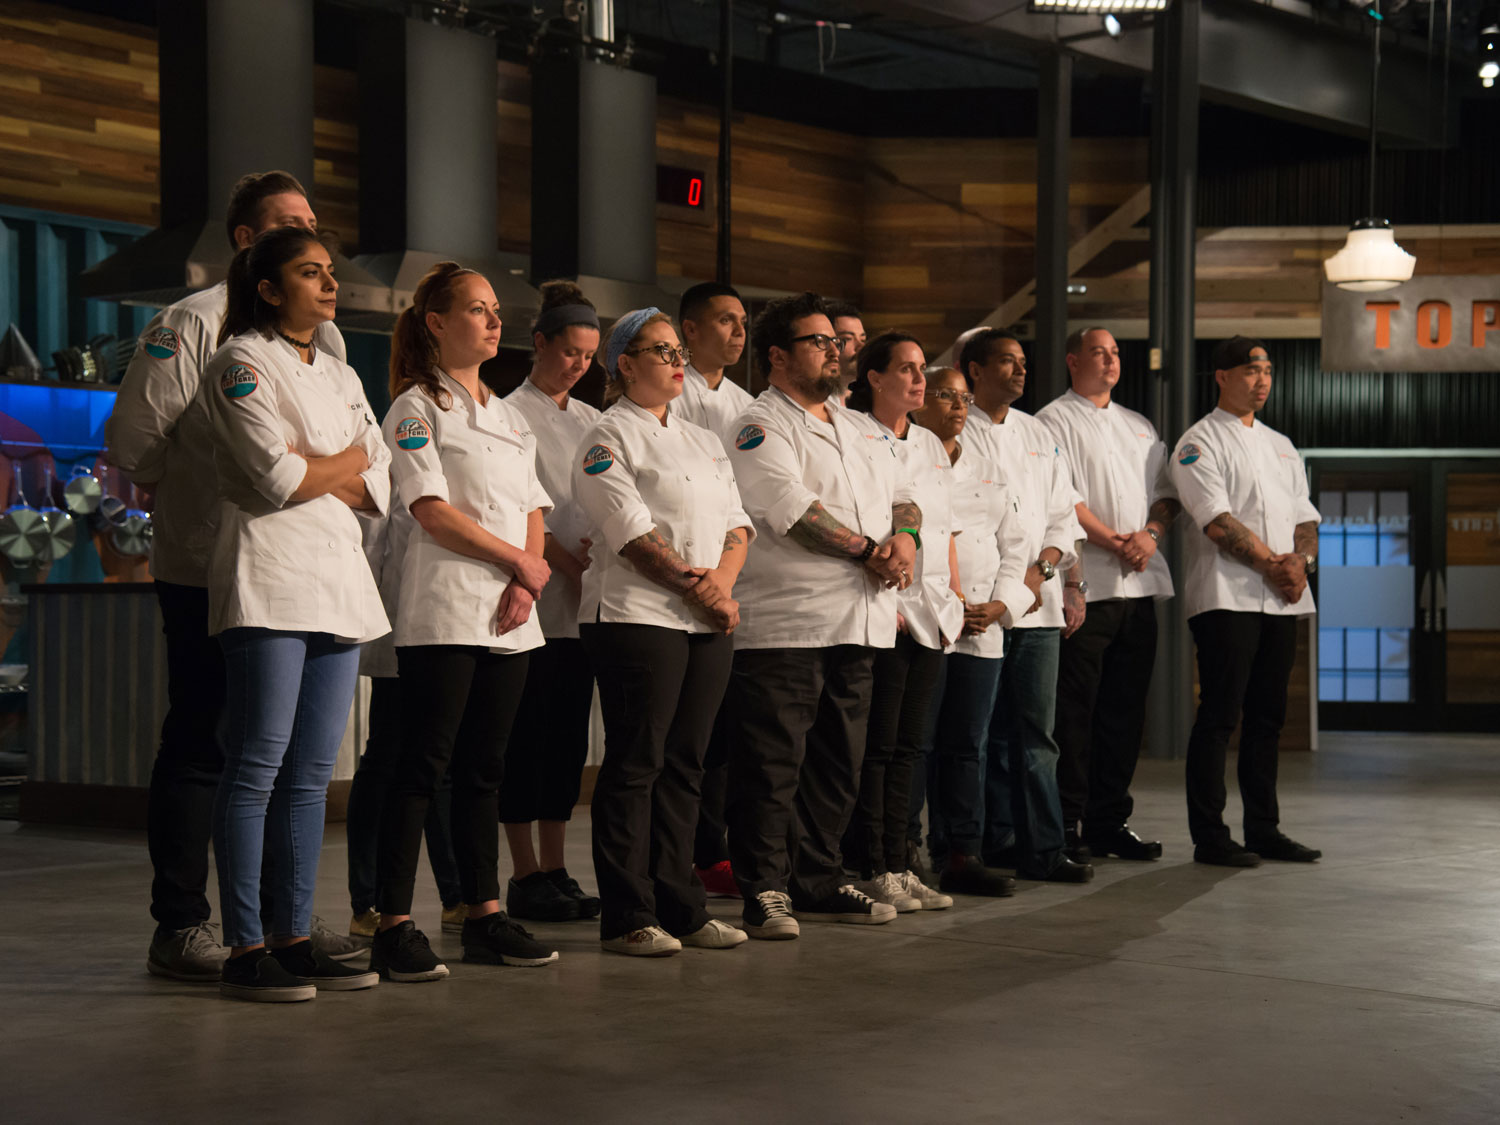 Take a Sneak Peek 'Top Chef' Season 15, Episode 2